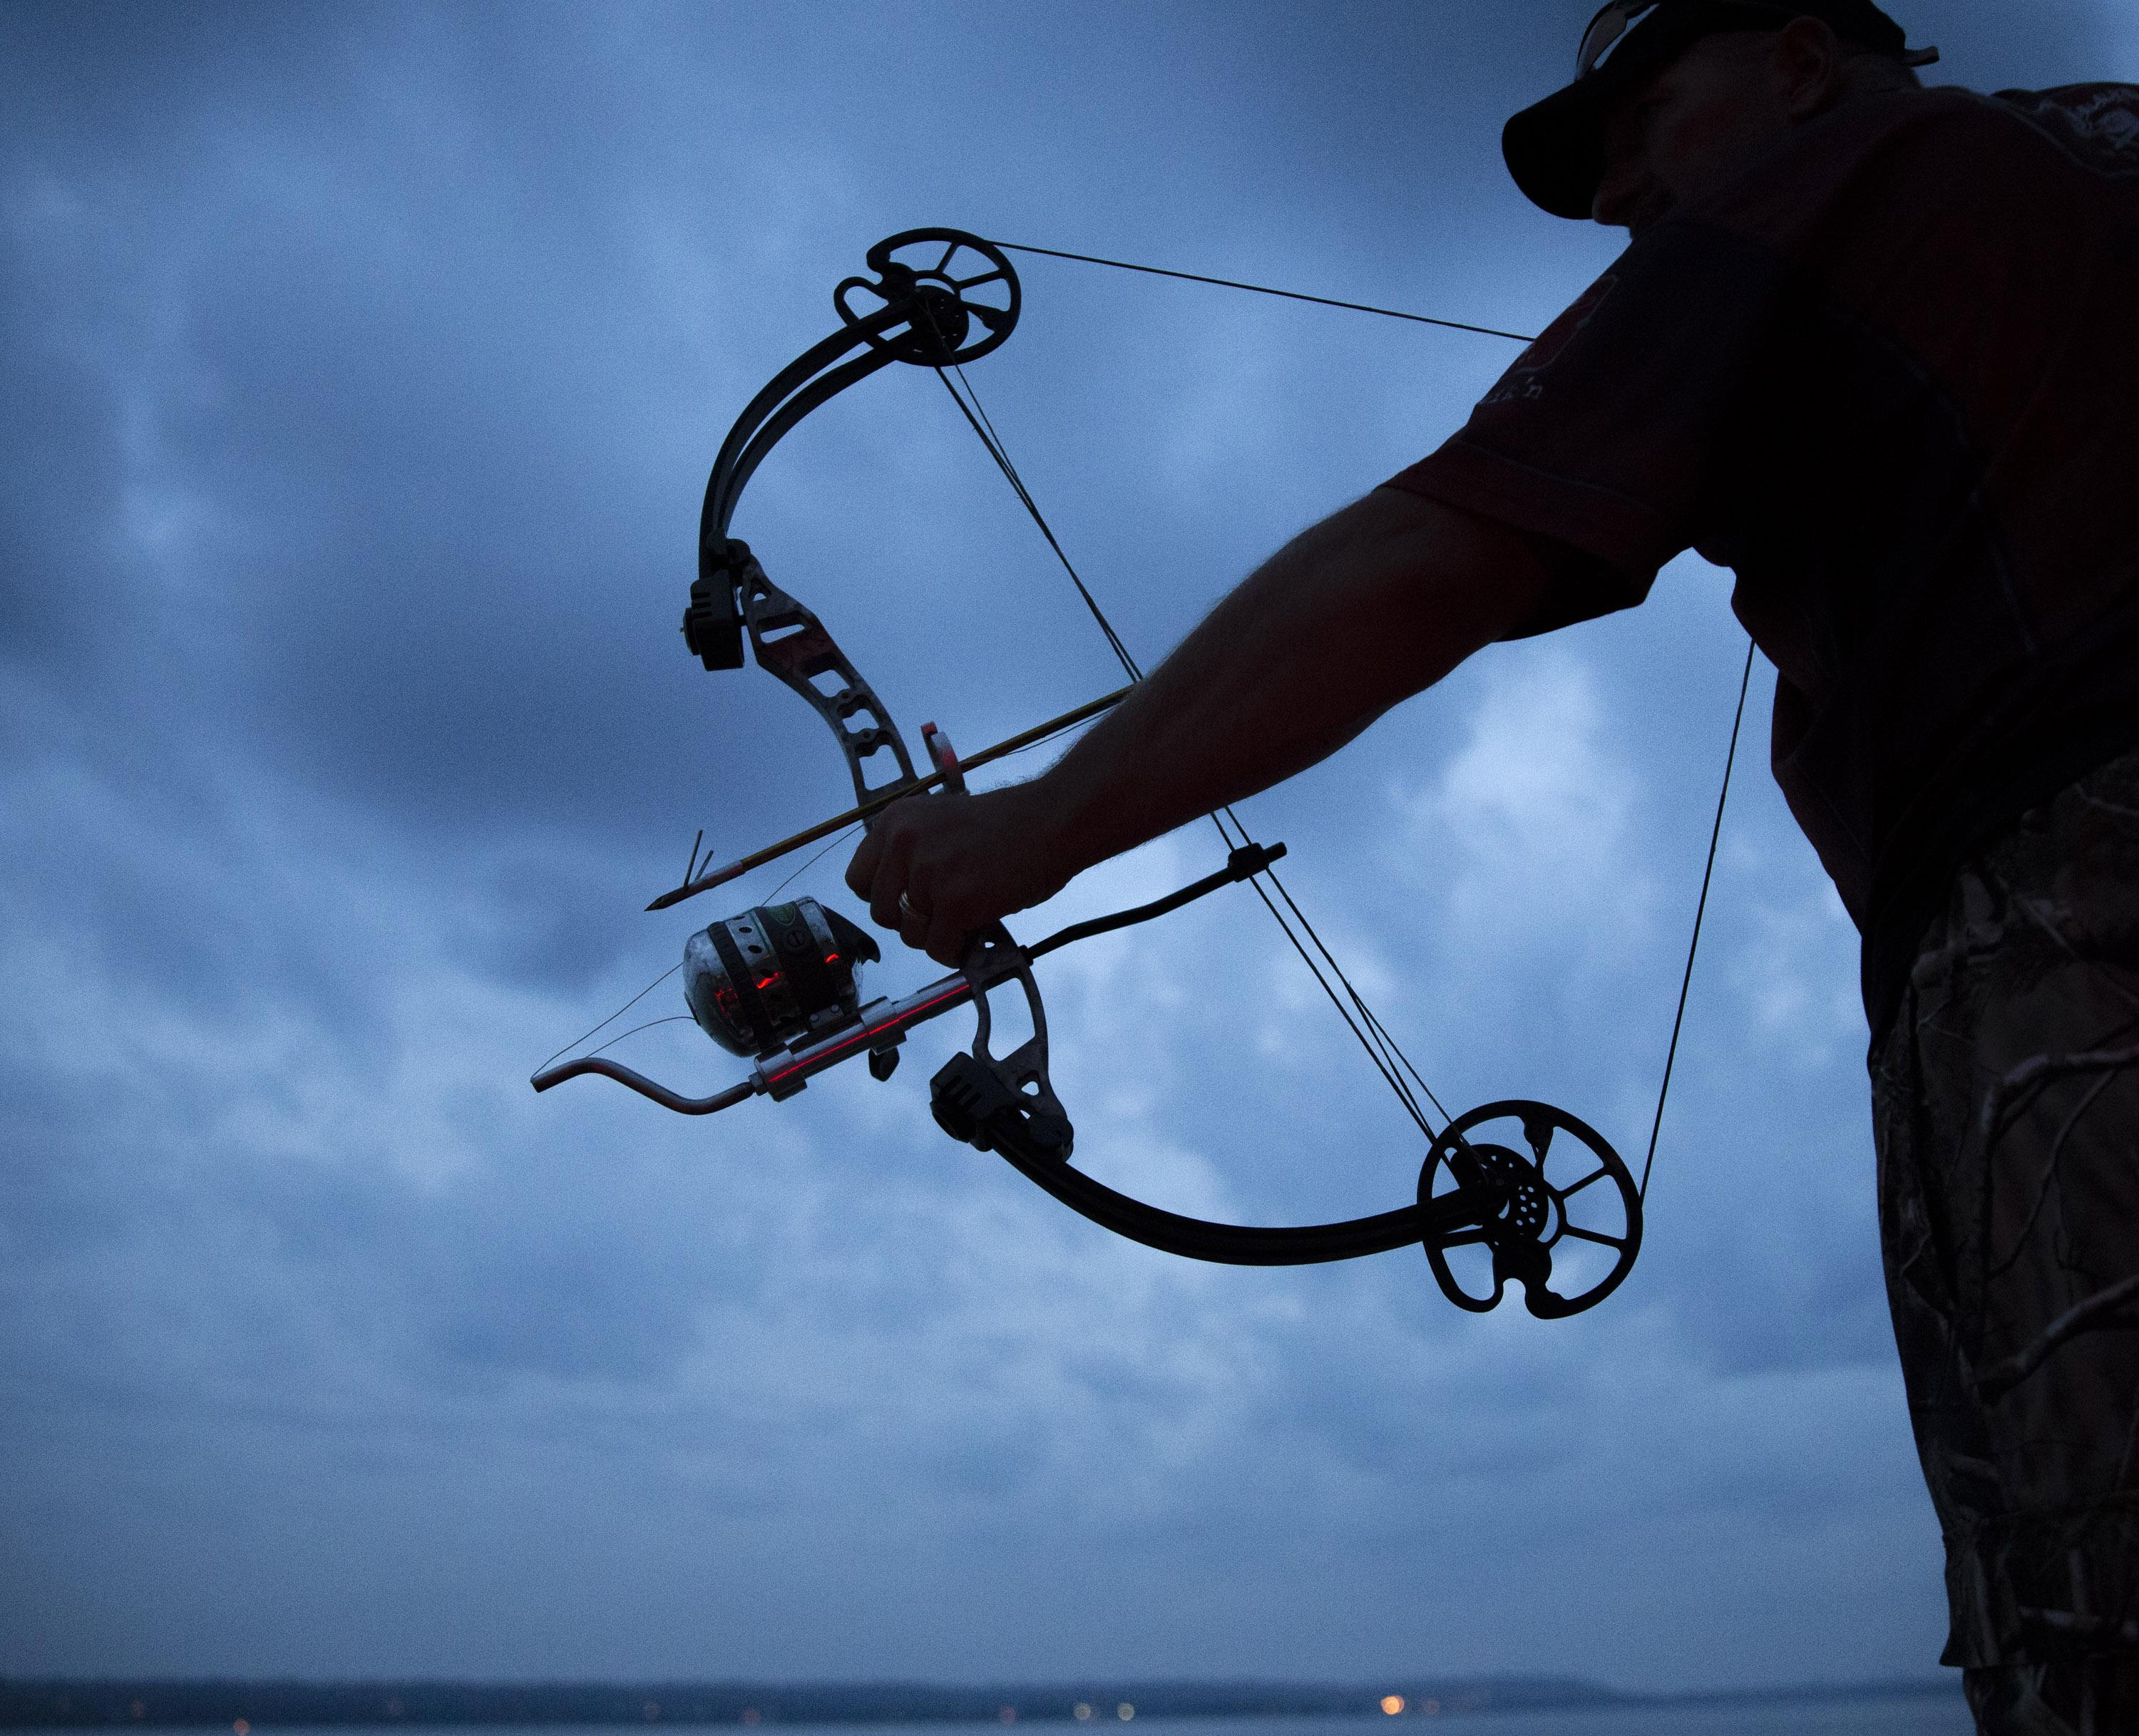 Bowfishing tournament in Mississippi River draws complaints